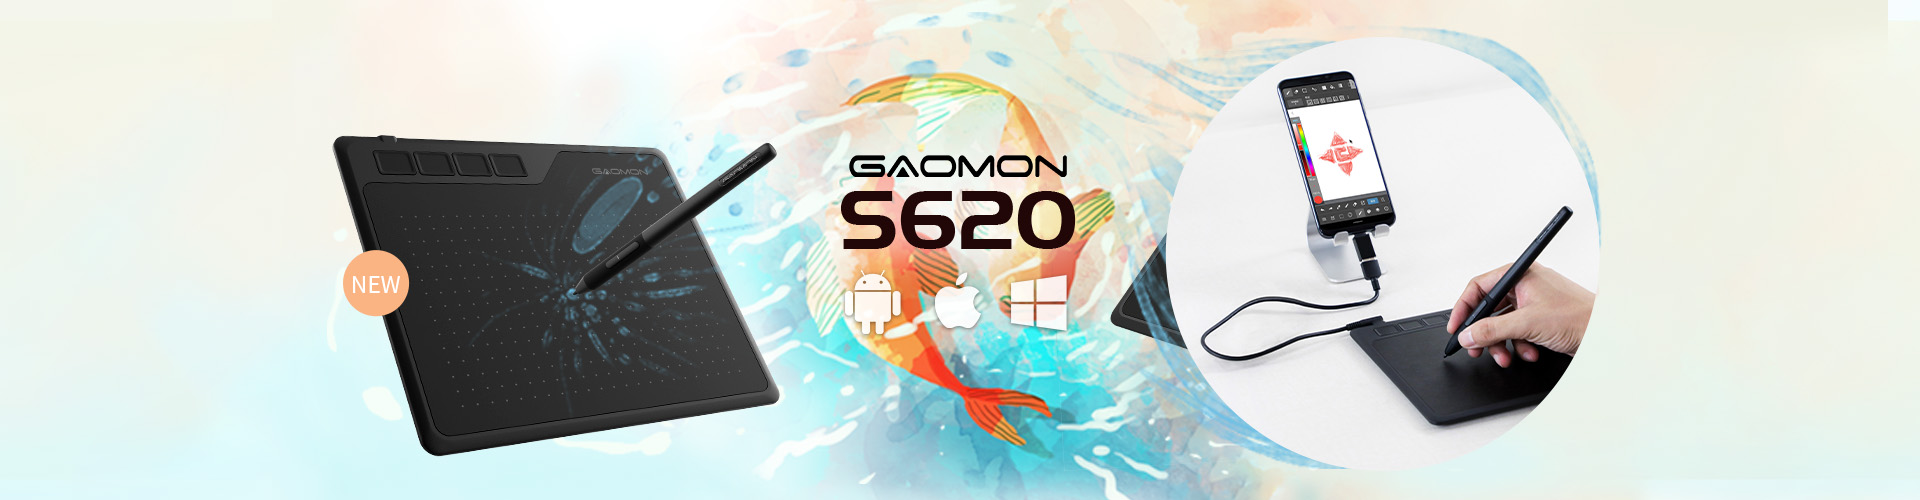 GAOMON Releases an Android Phone Compatible Tablet